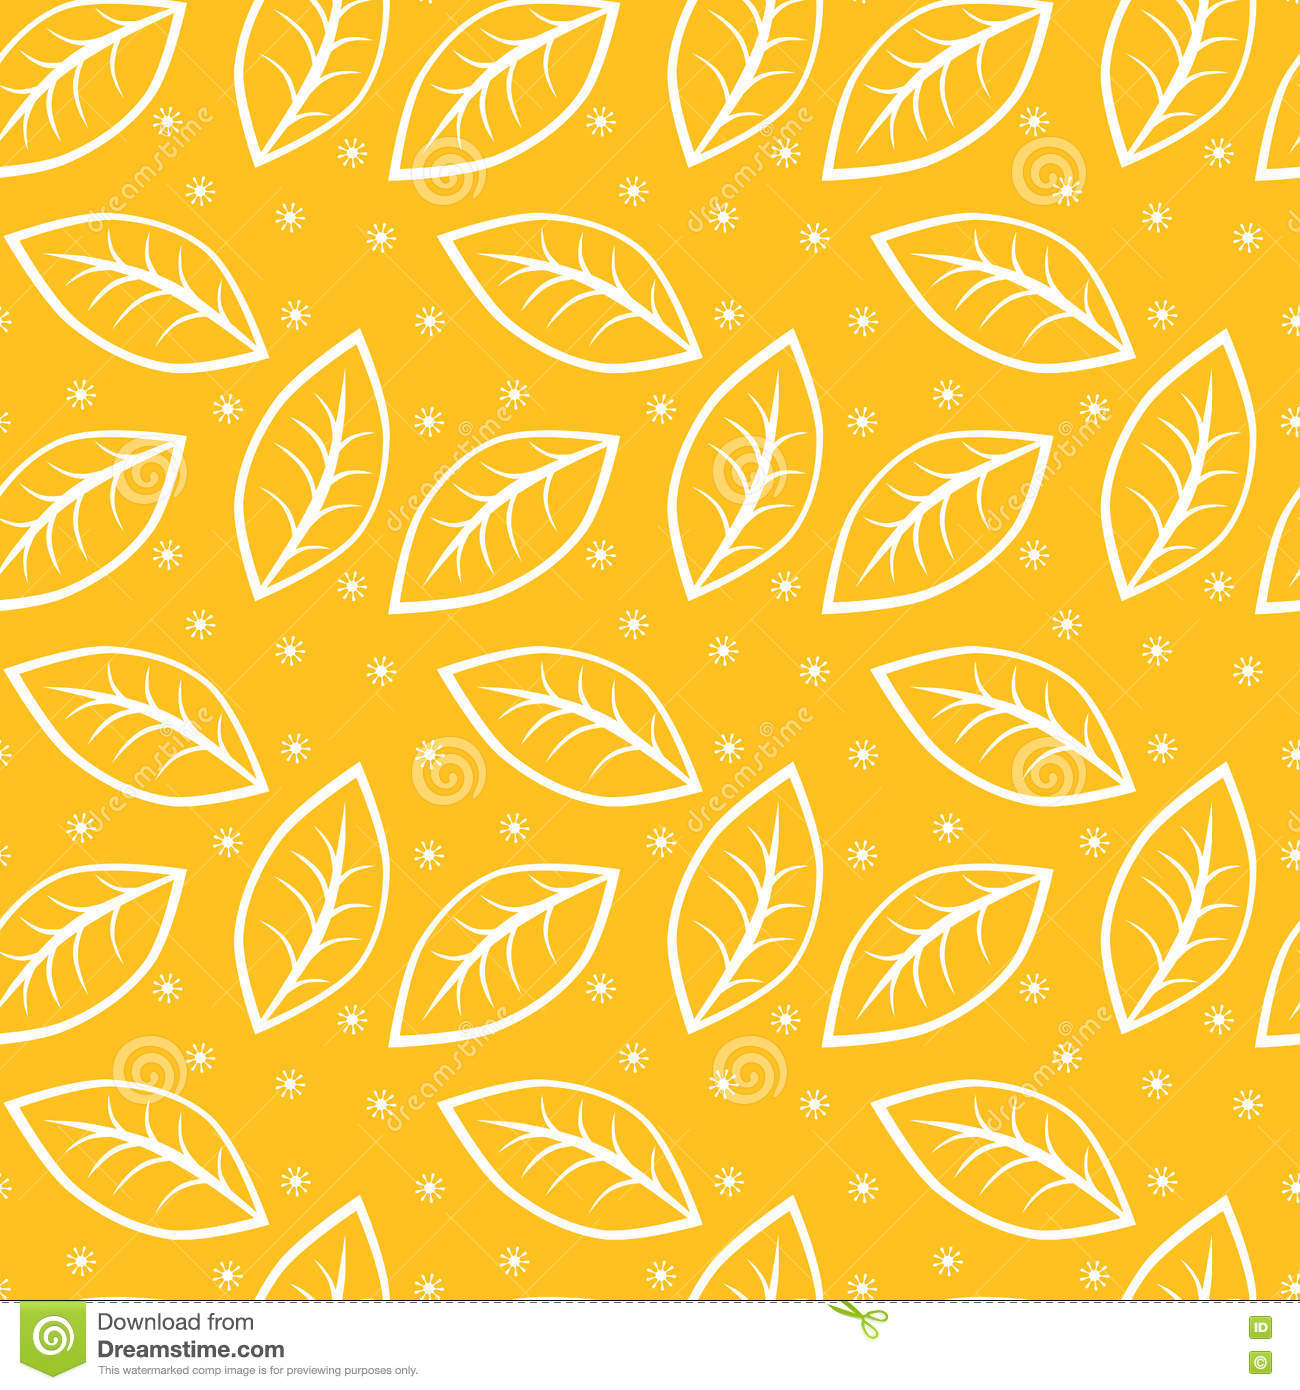 Seamless Leaves Autumn Background